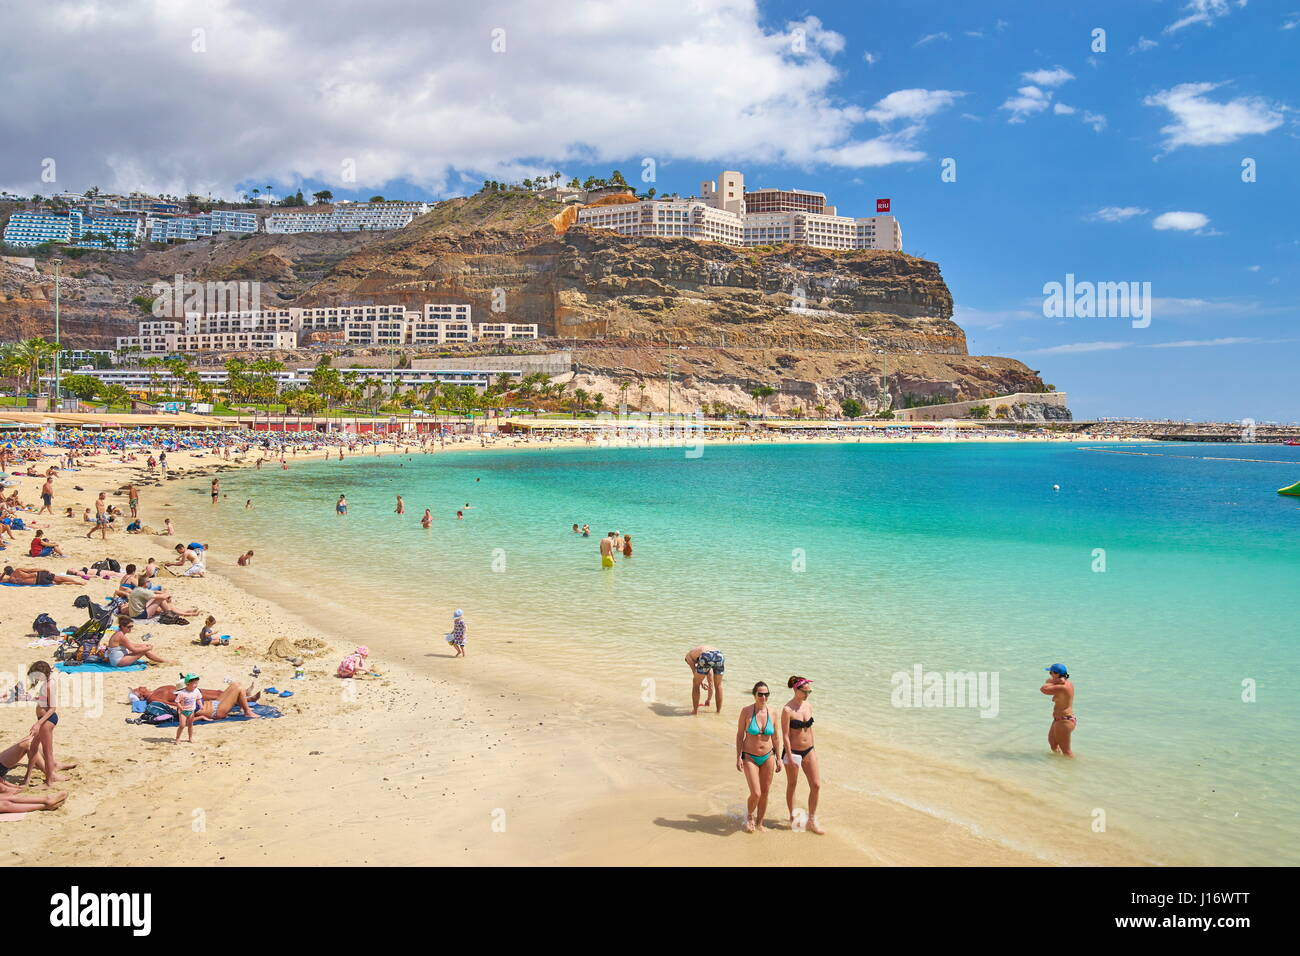 Tourists on the Puerto Rico Beach, Gran Canaria, Spain - Stock Image